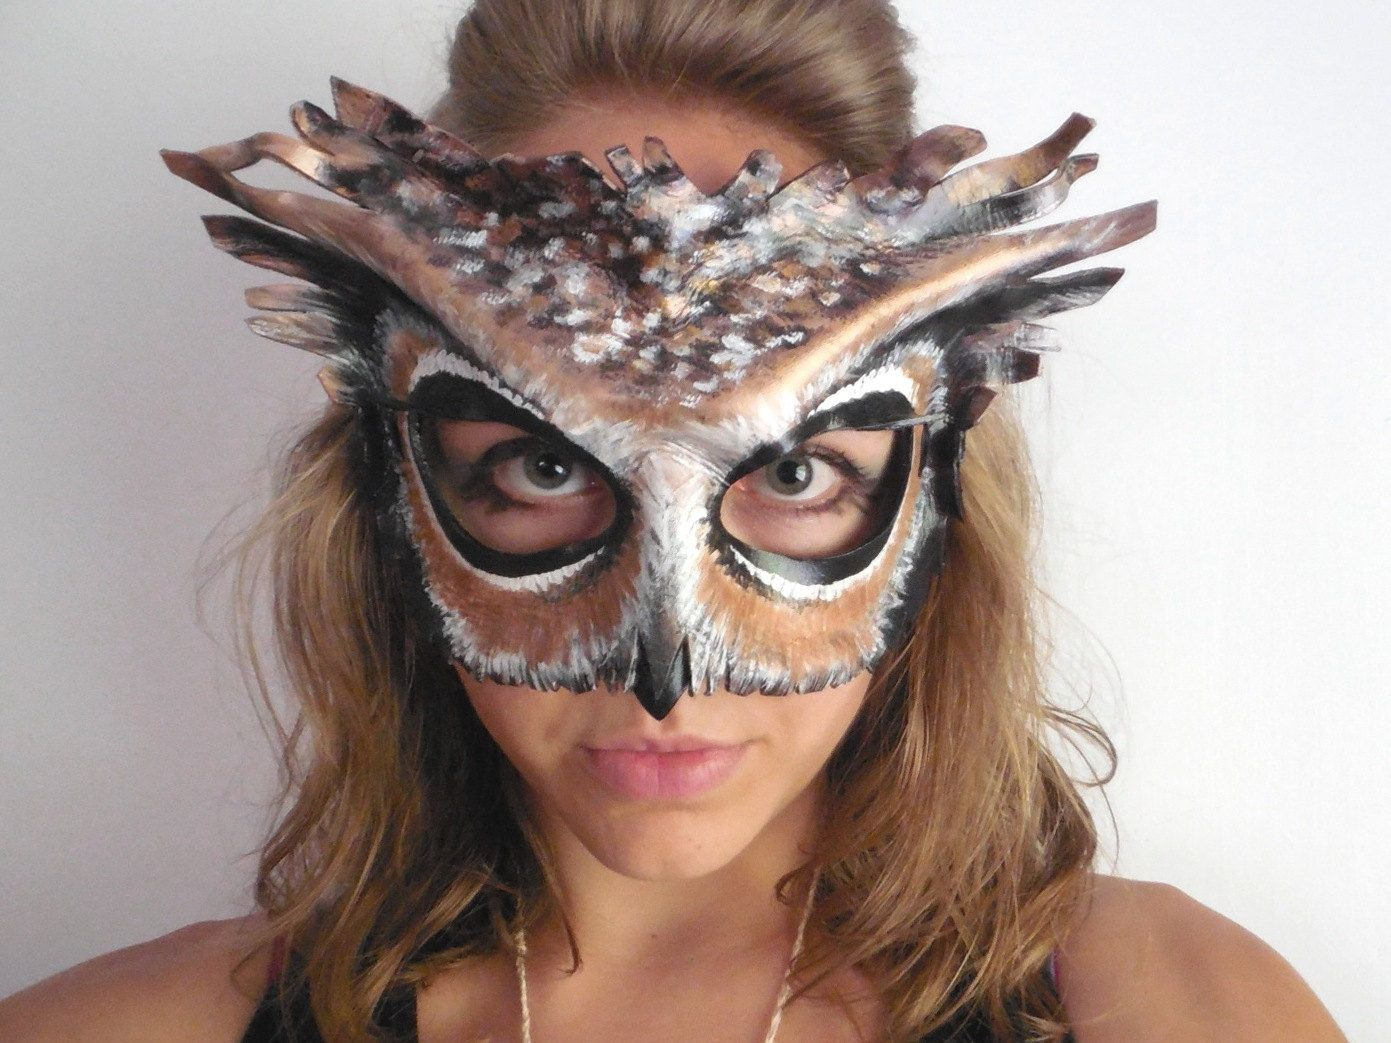 DIY Hedwig the Owl Halloween costume | DIY | Pinterest | Owl ...